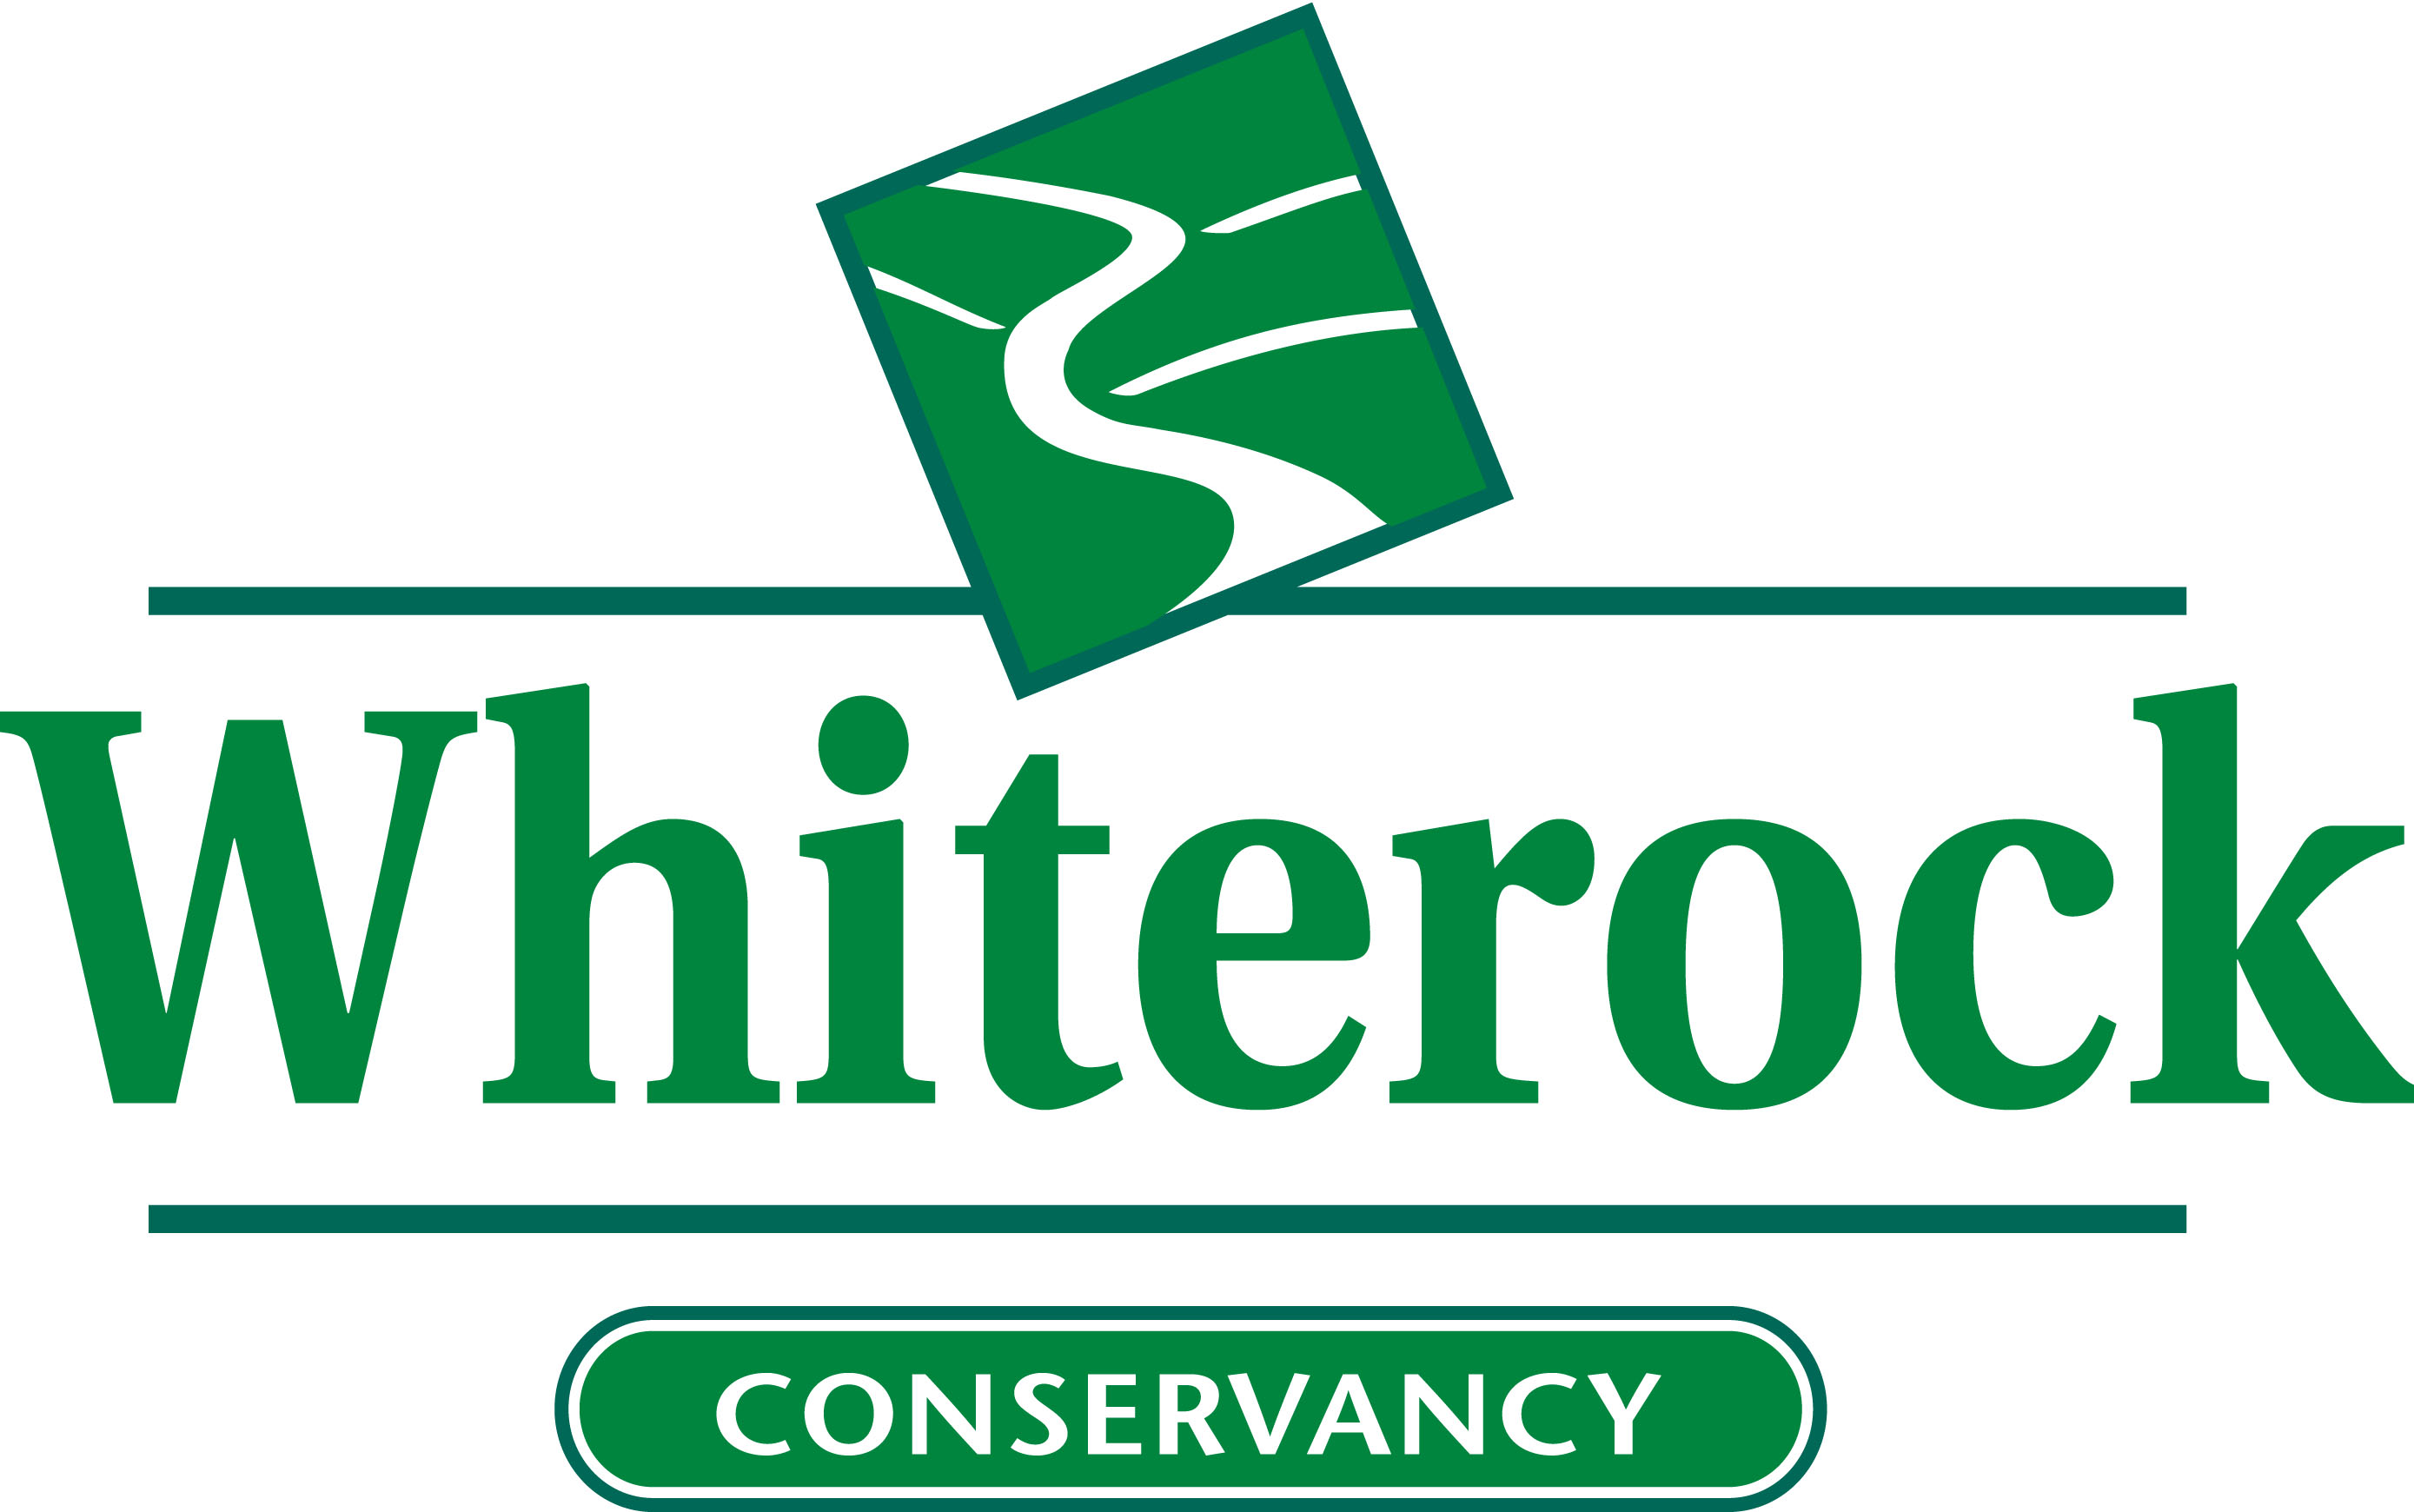 Whiterock Conservancy Logo